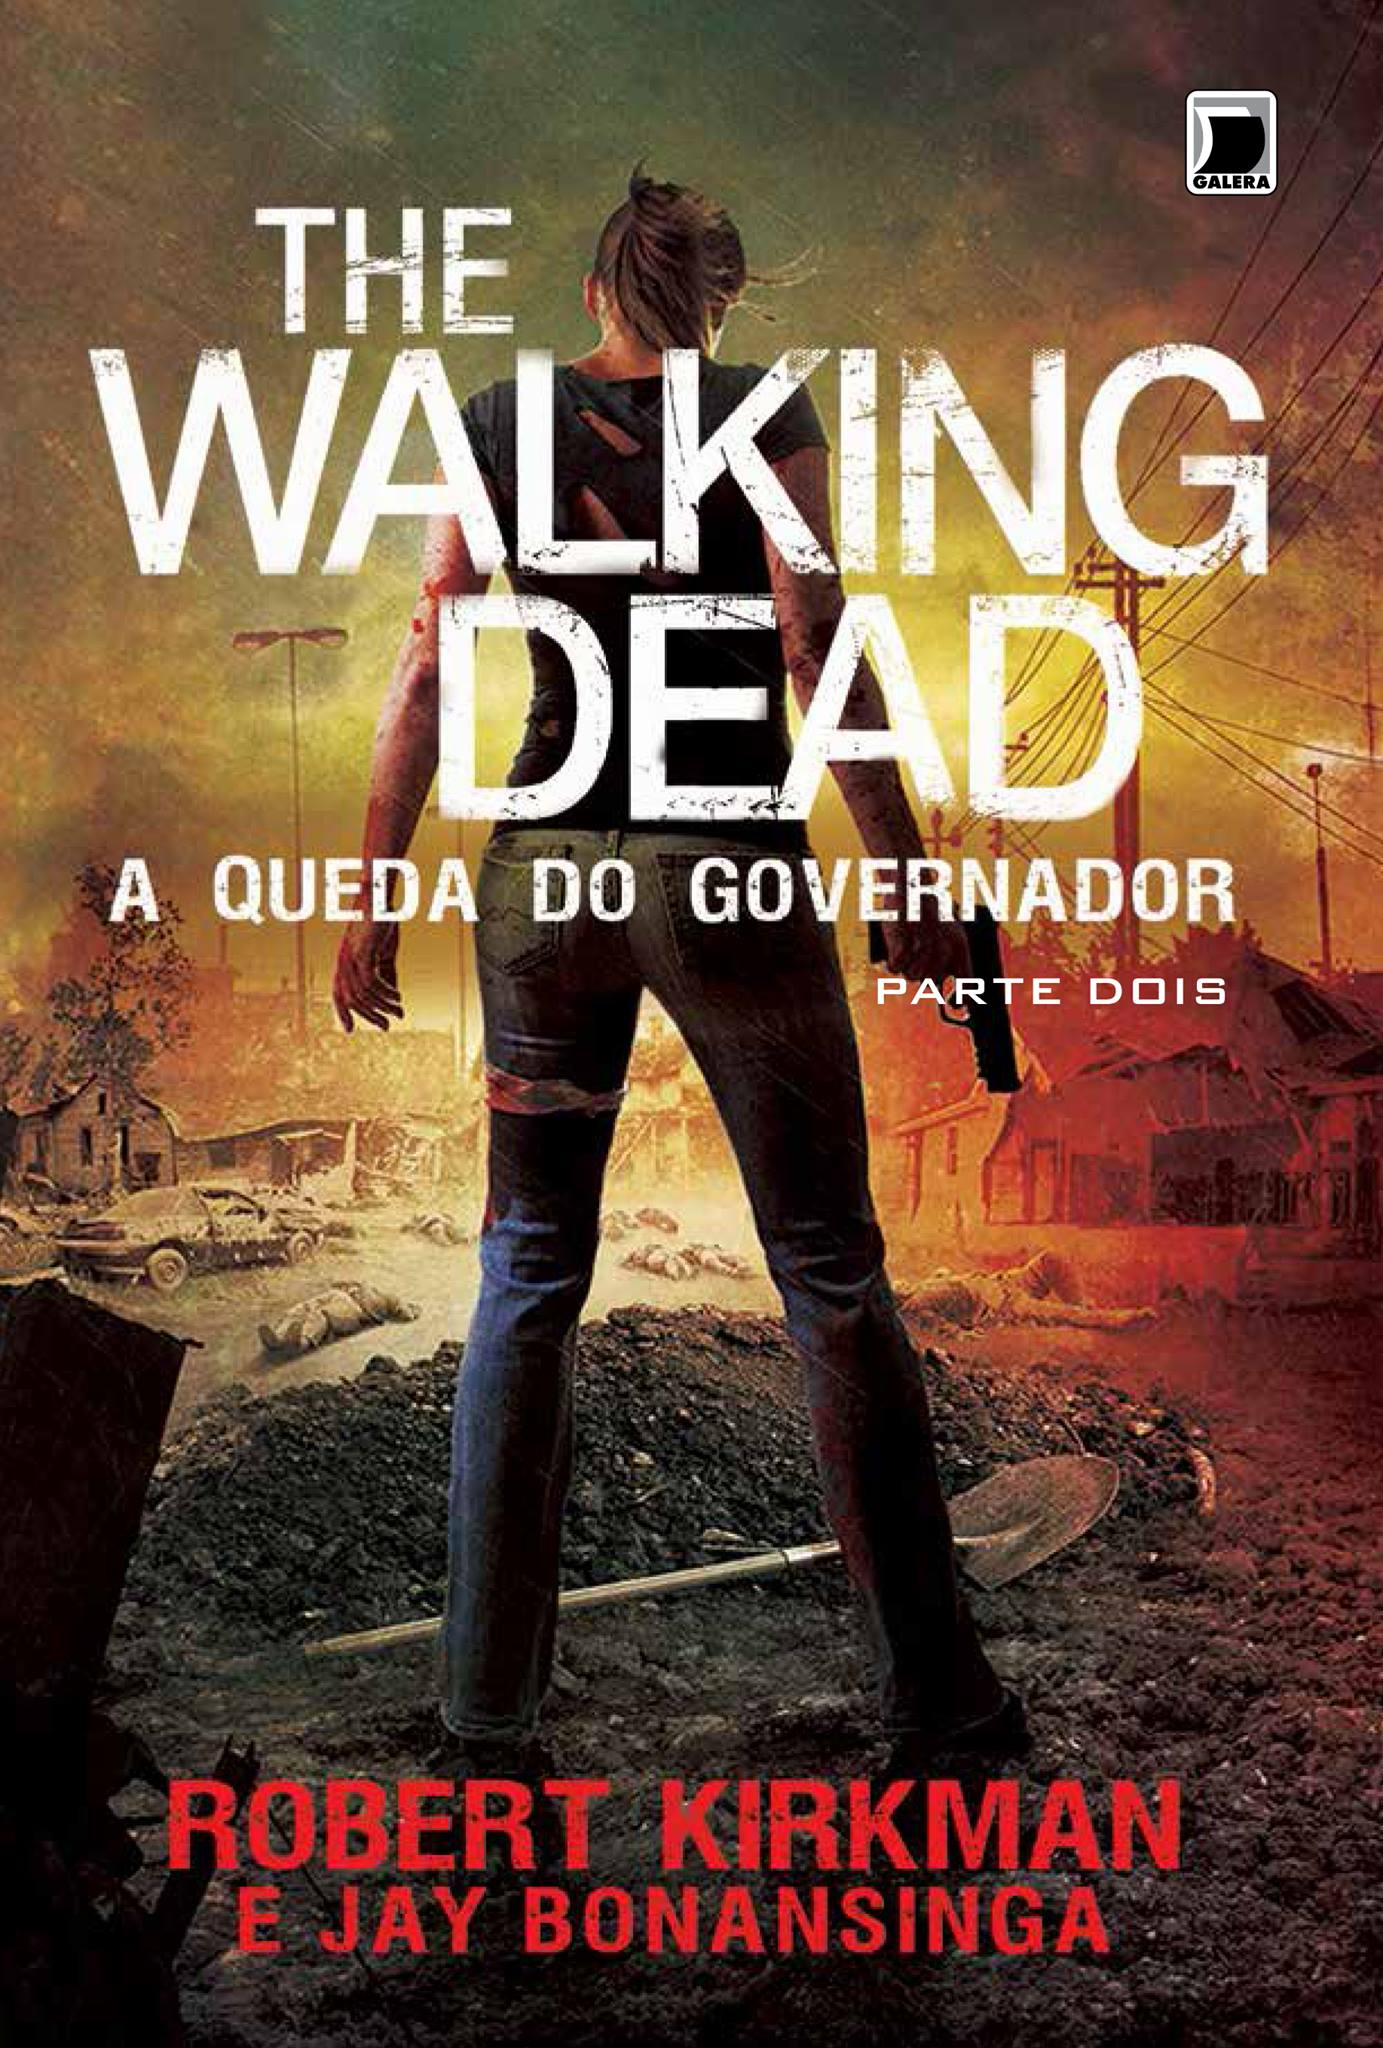 the-walking-dead-a-queda-do-governador-parte-2-capitulo-1